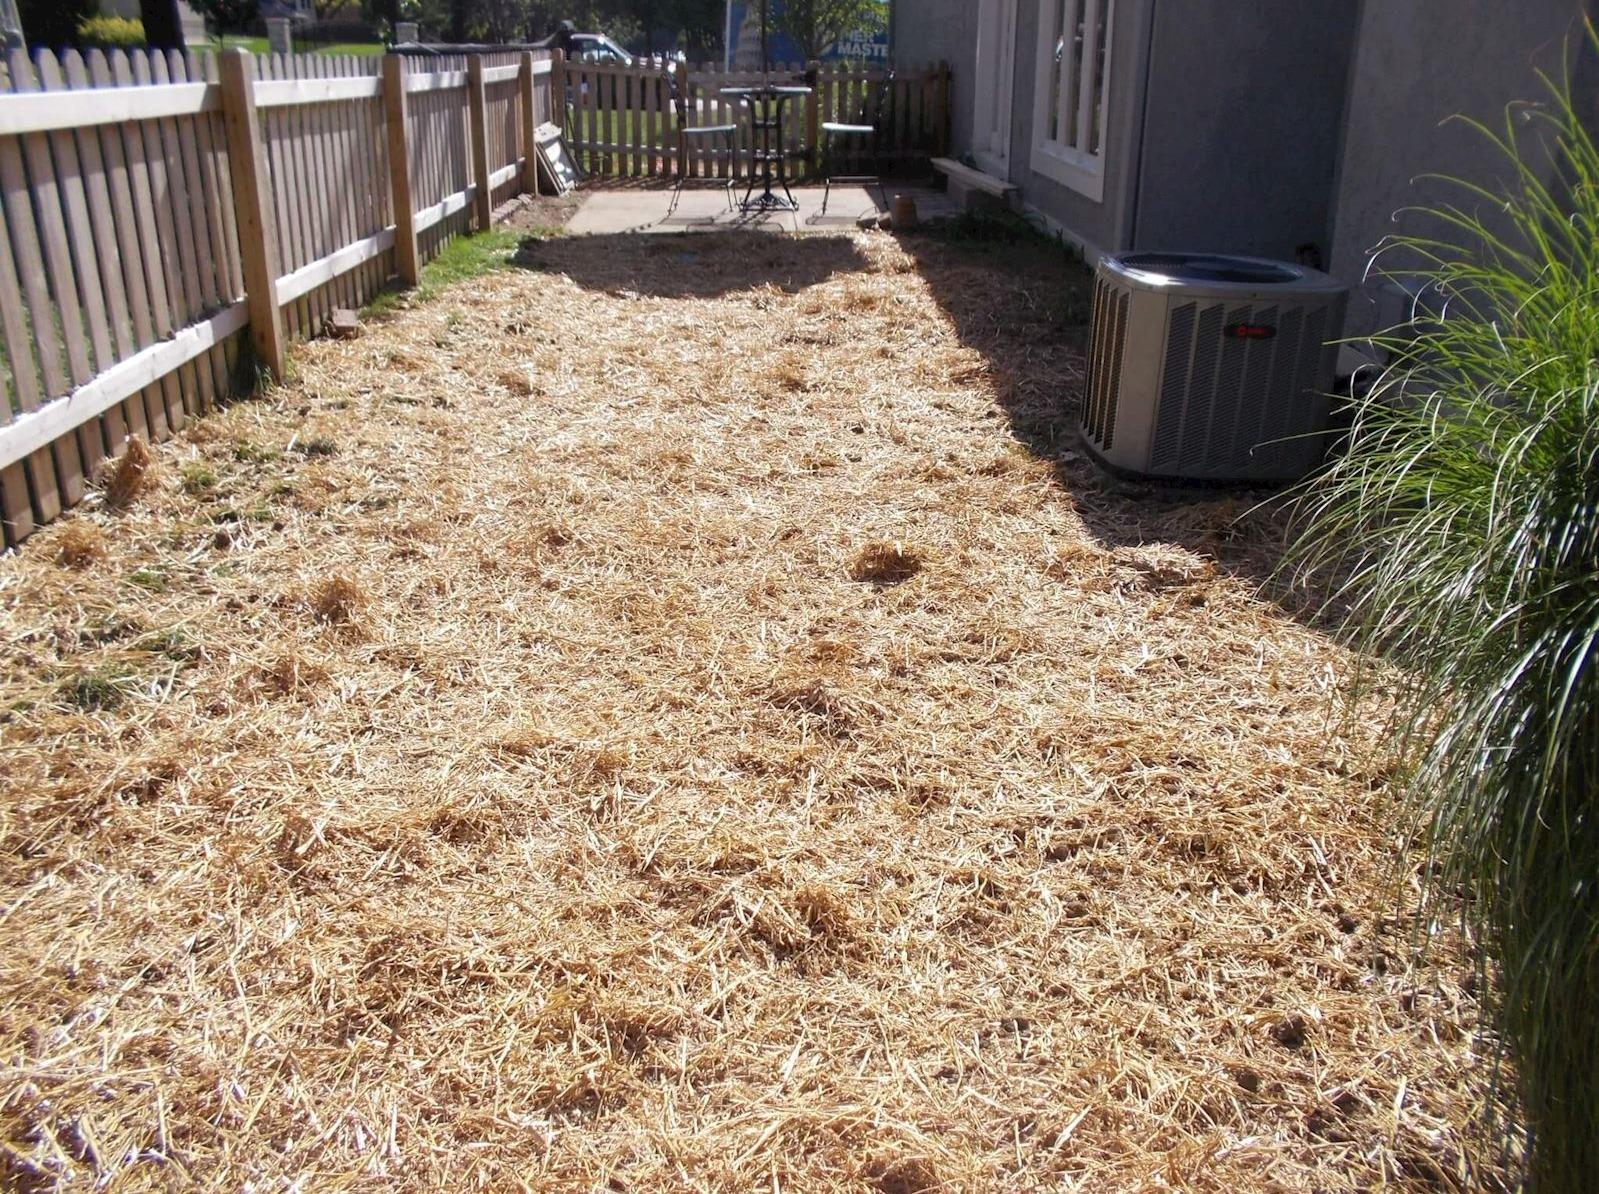 French Drain or Curtain Drain Installation - After Photo